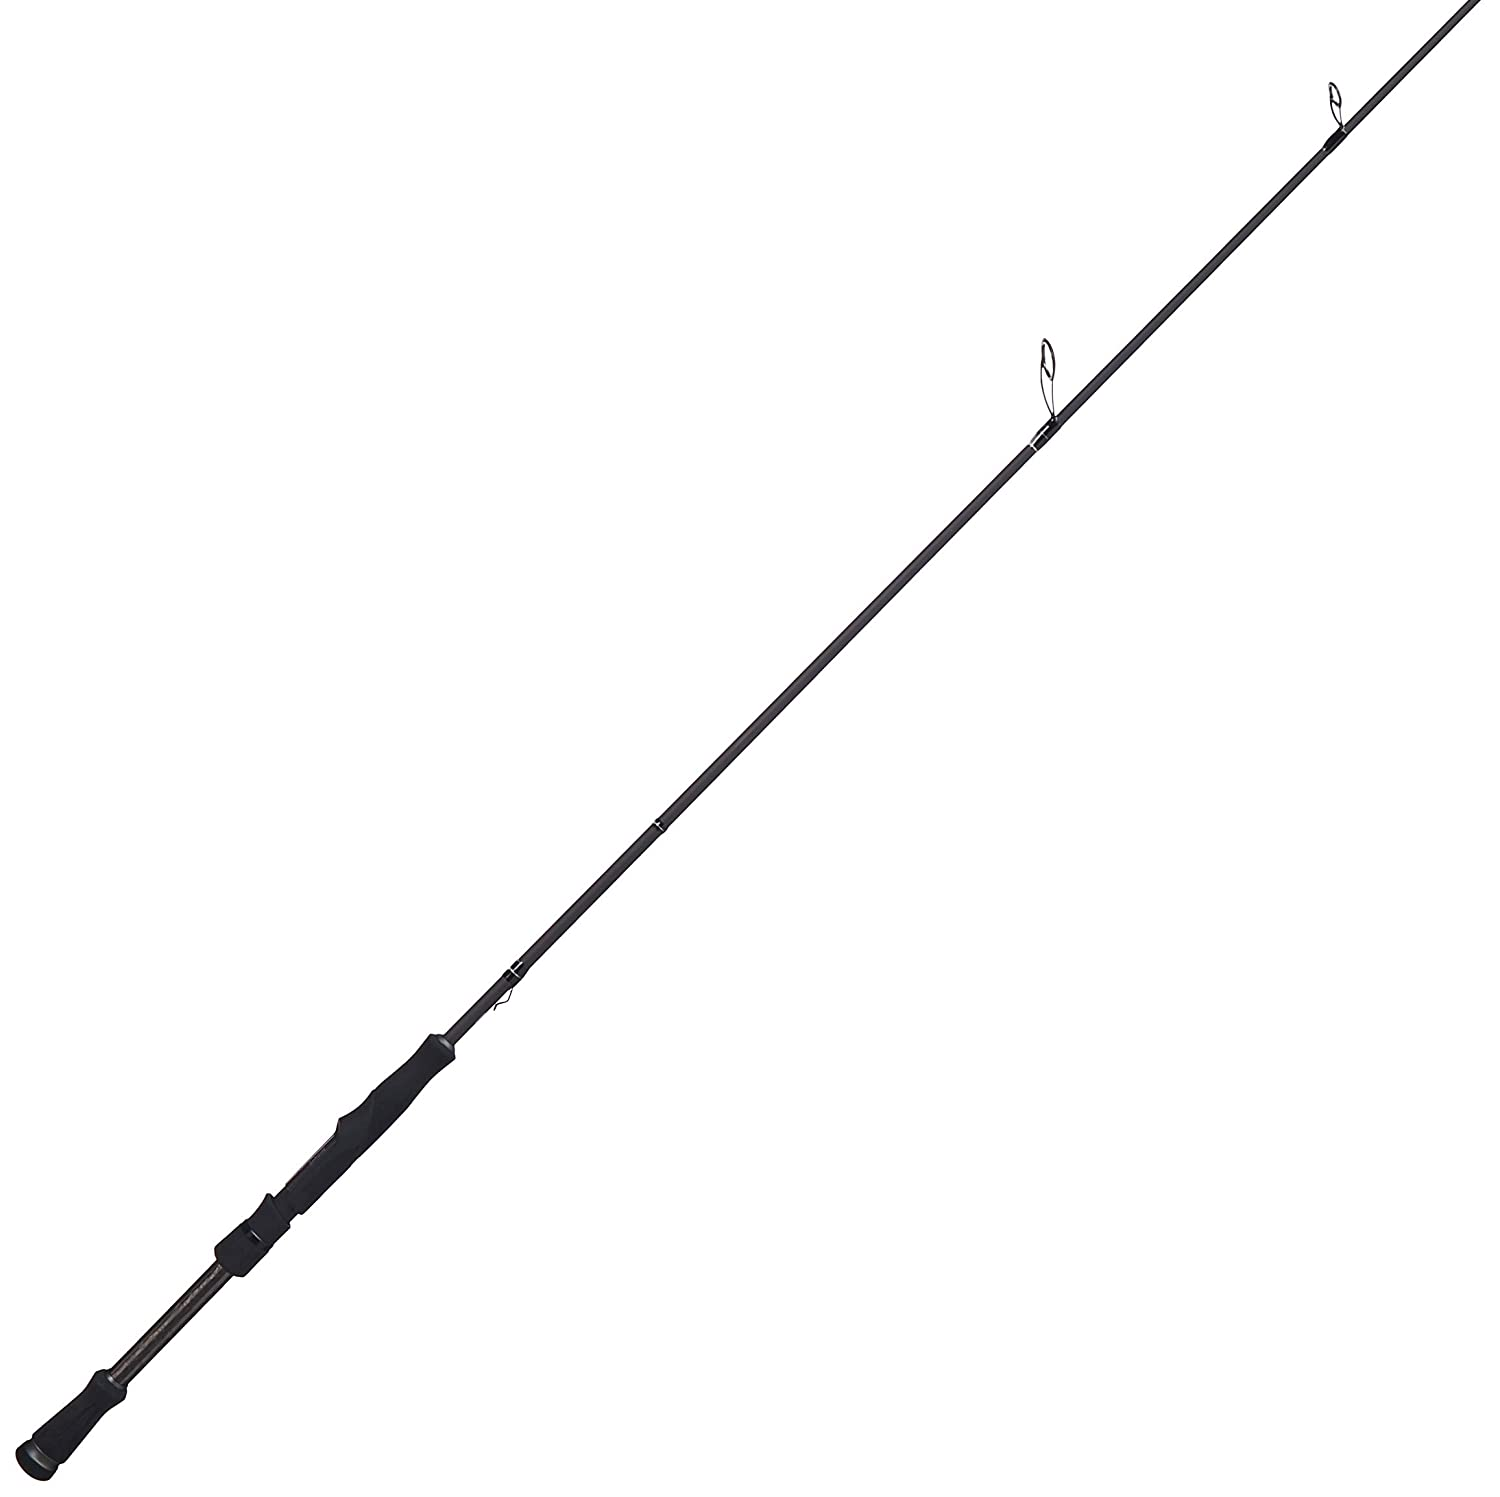 13 Fishing One 3 Fate Chrome ML Spinning Rod